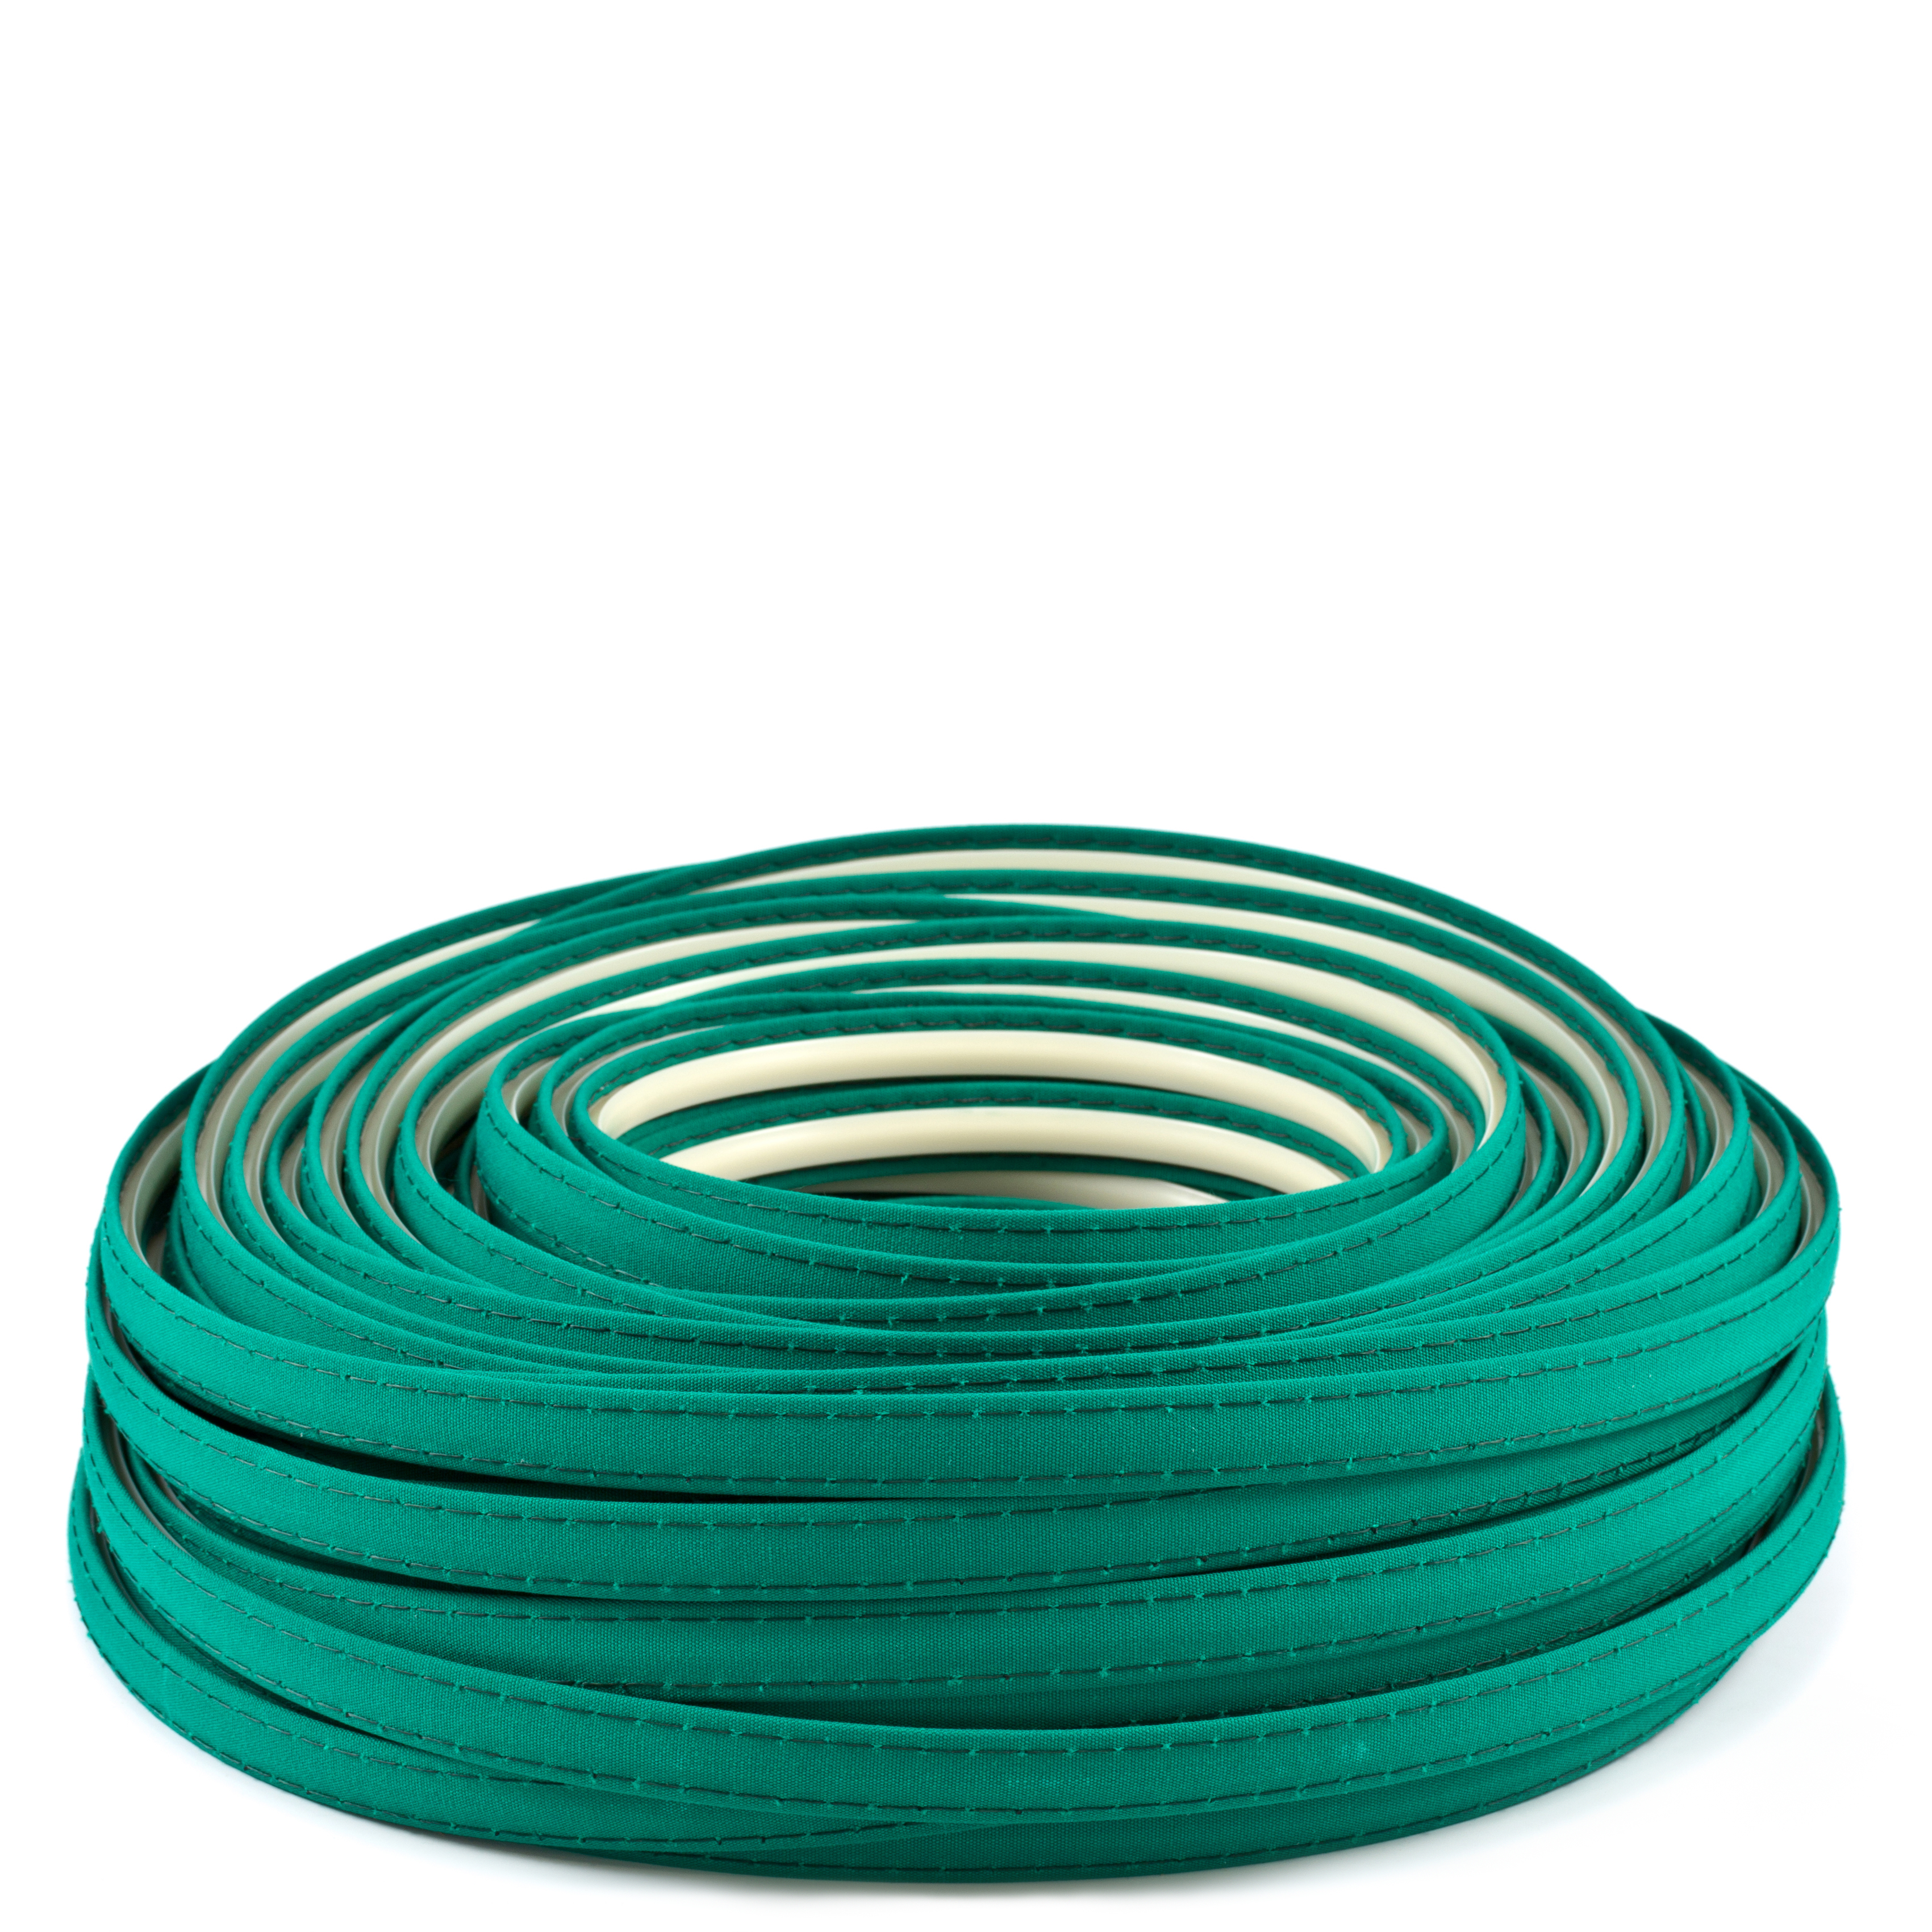 Steel Stitch Sunbrella Covered ZipStrip #6045 Seagrass Green 160' Full Rolls Only